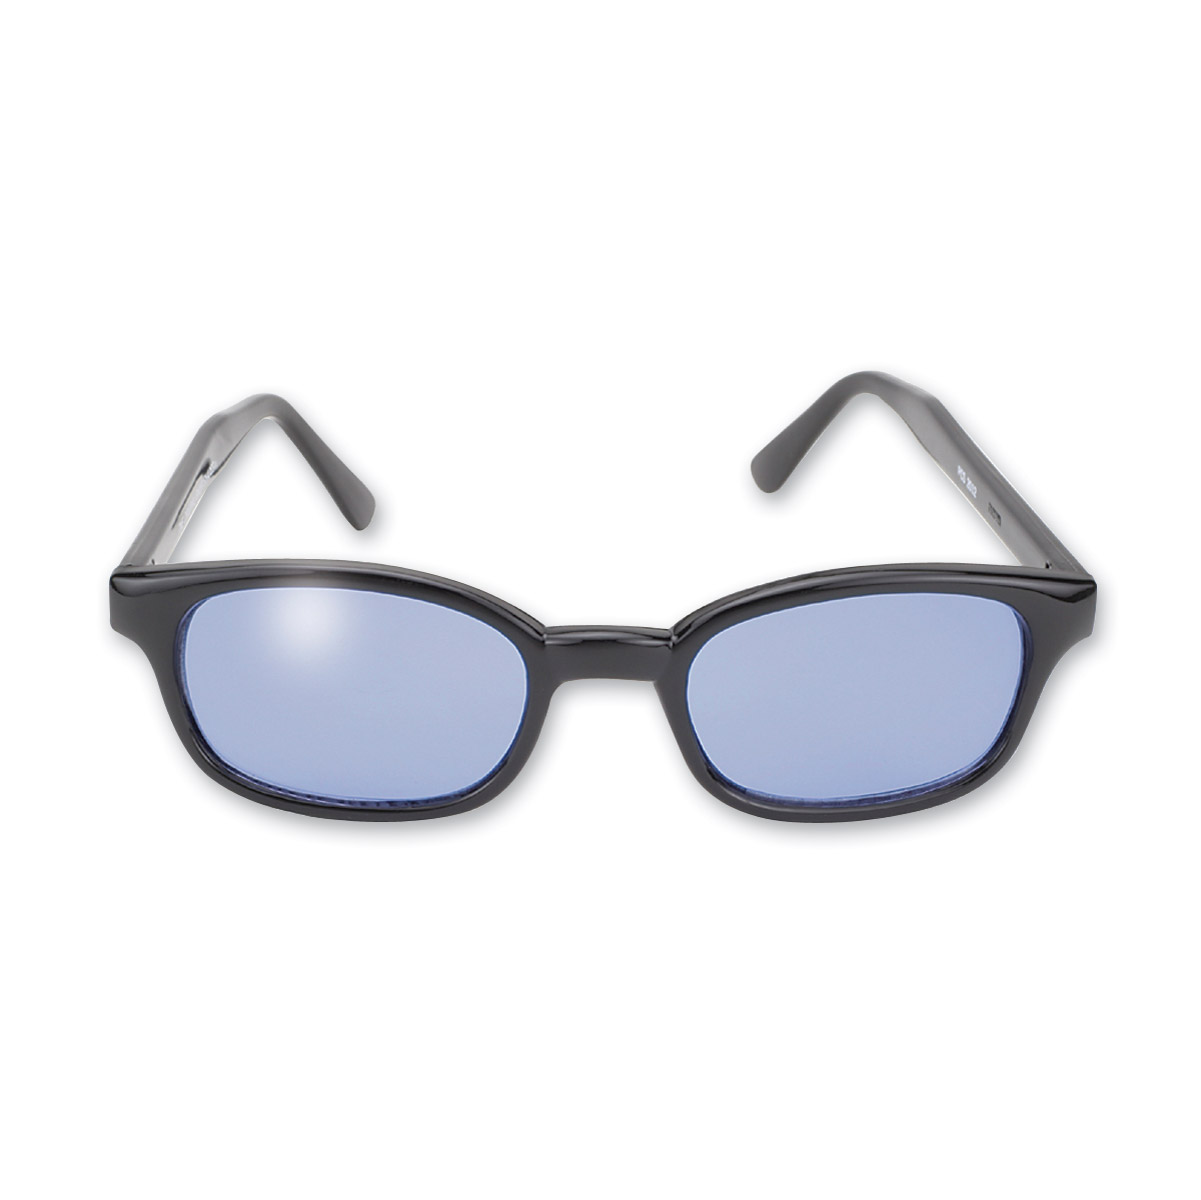 KD's Sunglasses - Black Frame with Blue Lens